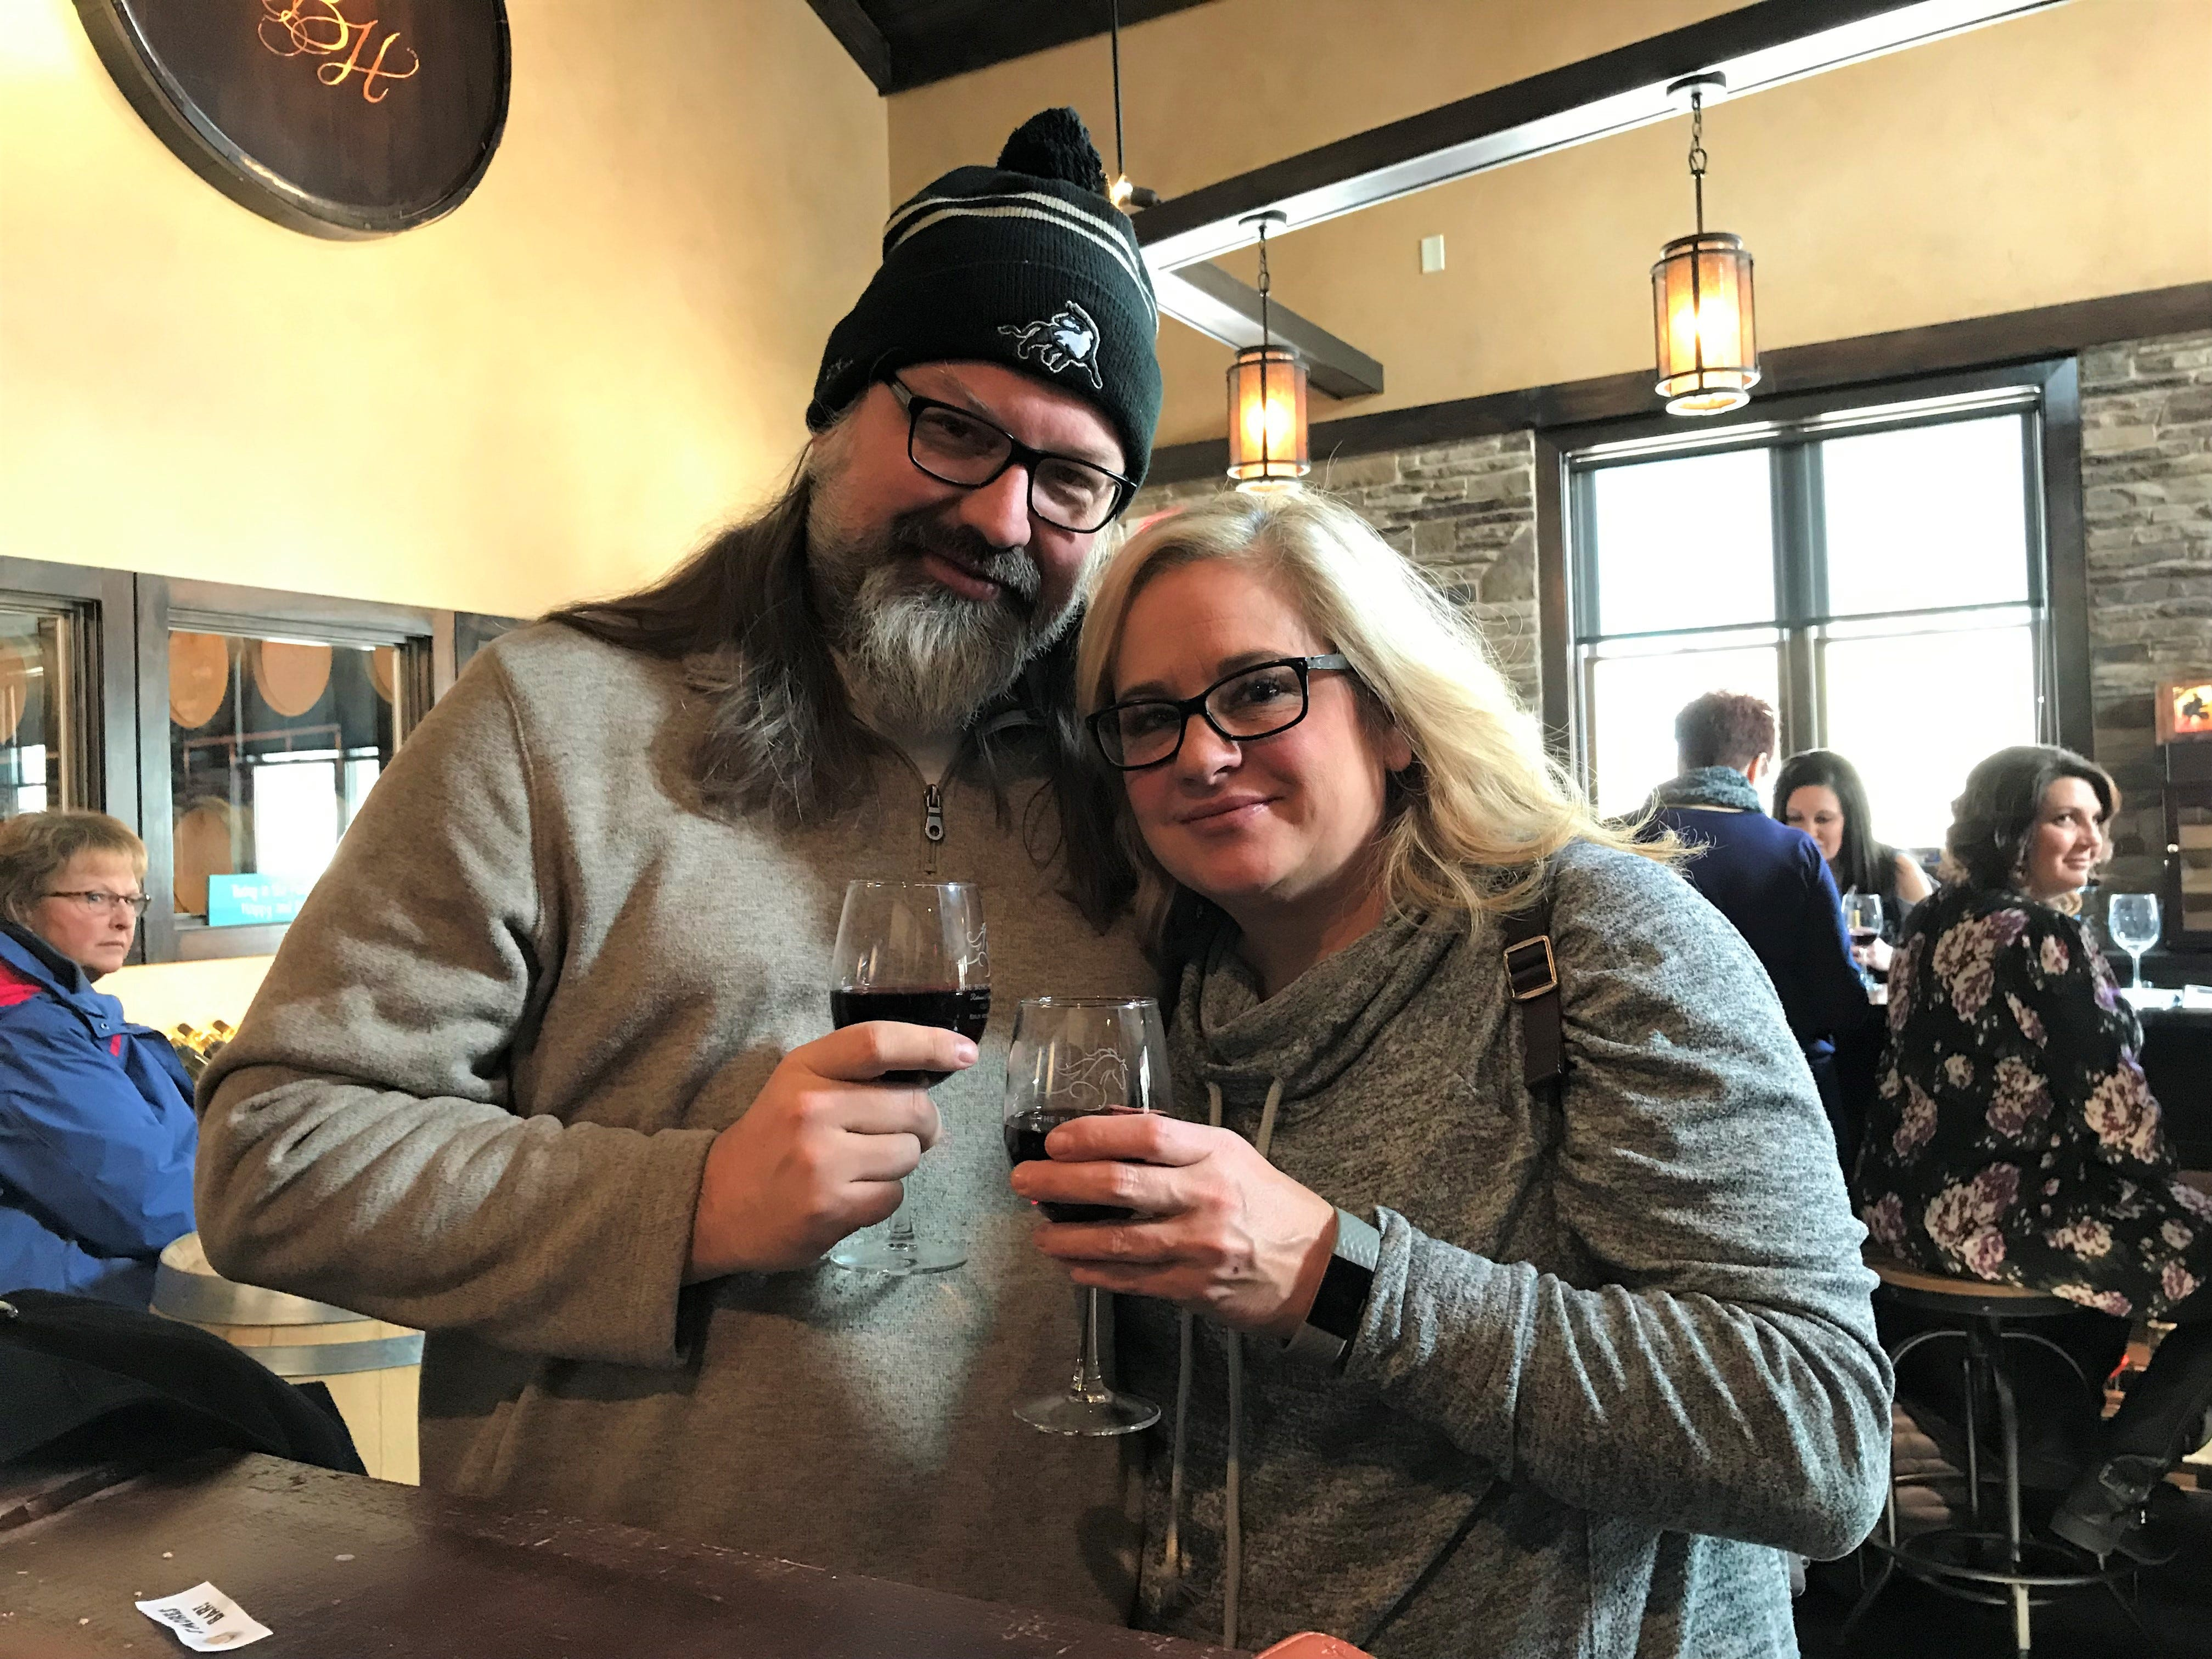 Robyn Camplejohn and Allen Dickert had never tried ice wine before Saturday but loved it so much they bought a bottle. The pair also found a number of wines they weren't even aware of before they went to the Blind Horse.